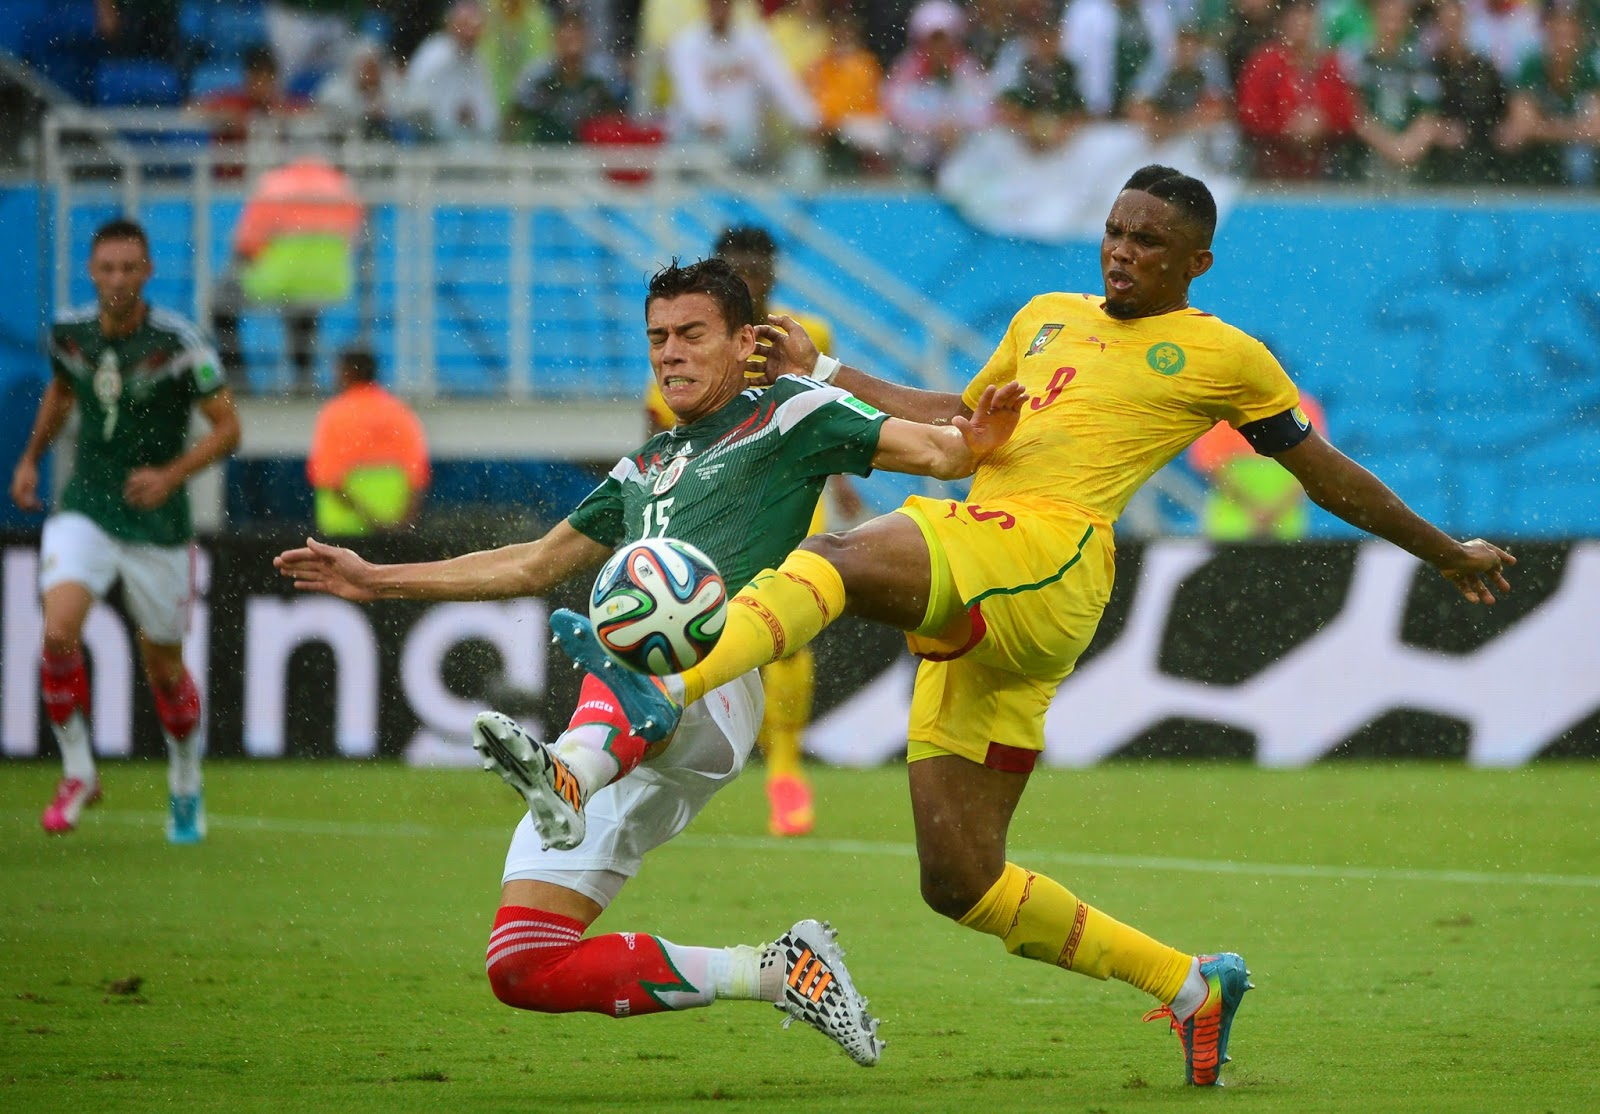 Brazil, Cameroon Captain, Cameroon Squad, Dunas Arena, FIFA World Cup, FIFA World Cup 2014, Football, Group A, Mexico Captain, Mexico Squad, Mexico vs Cameroon, Oribe Peralta, Rafael Marquez, Second Match, Sports,